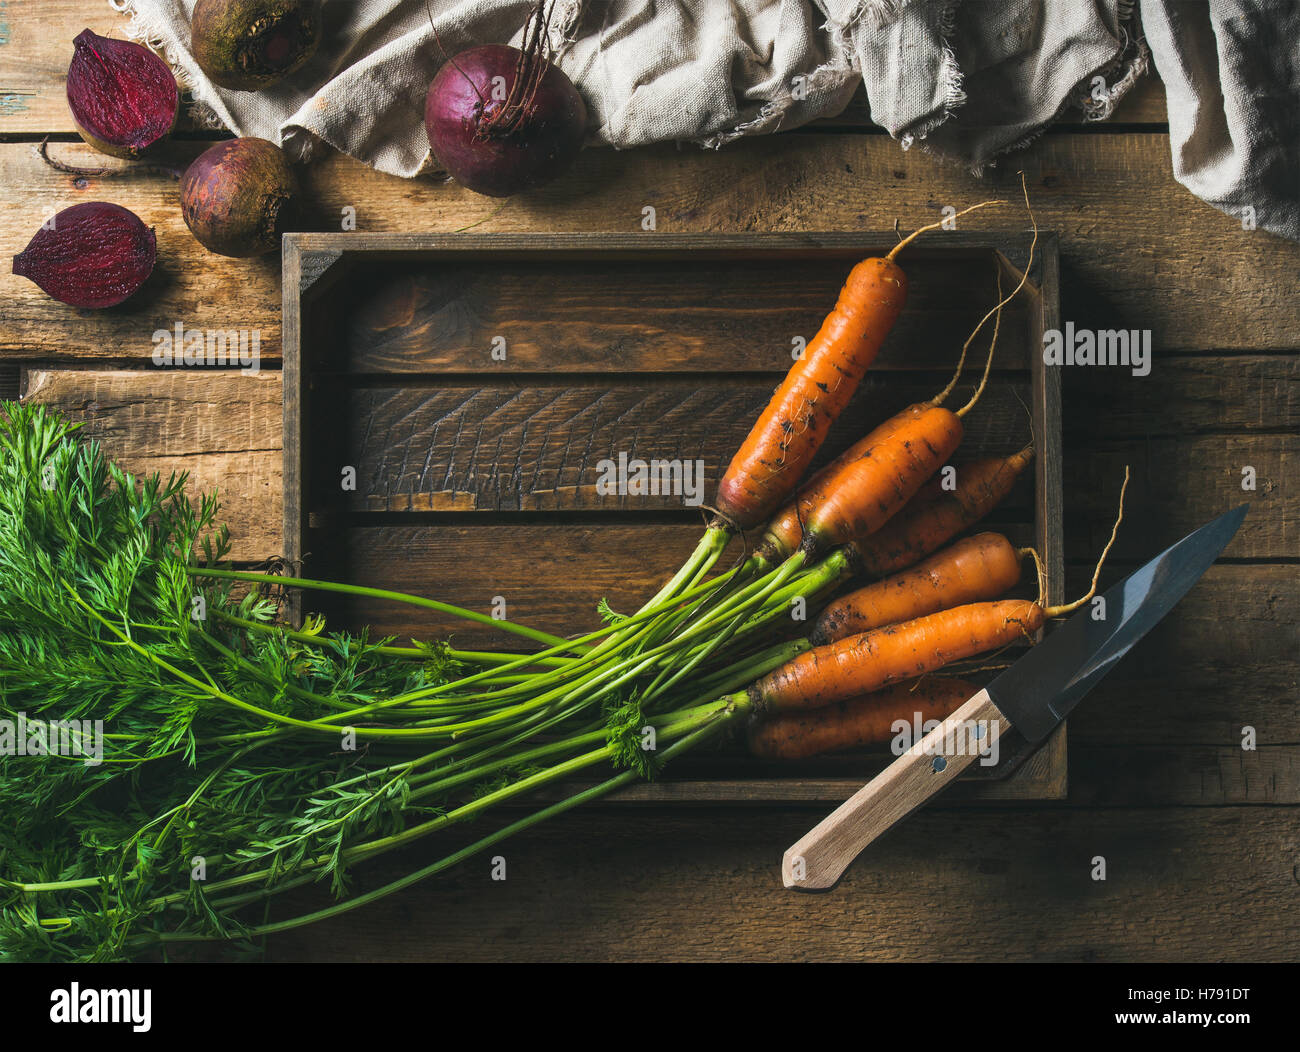 Fresh carrots and beetroots in wooden tray over rustic background - Stock Image